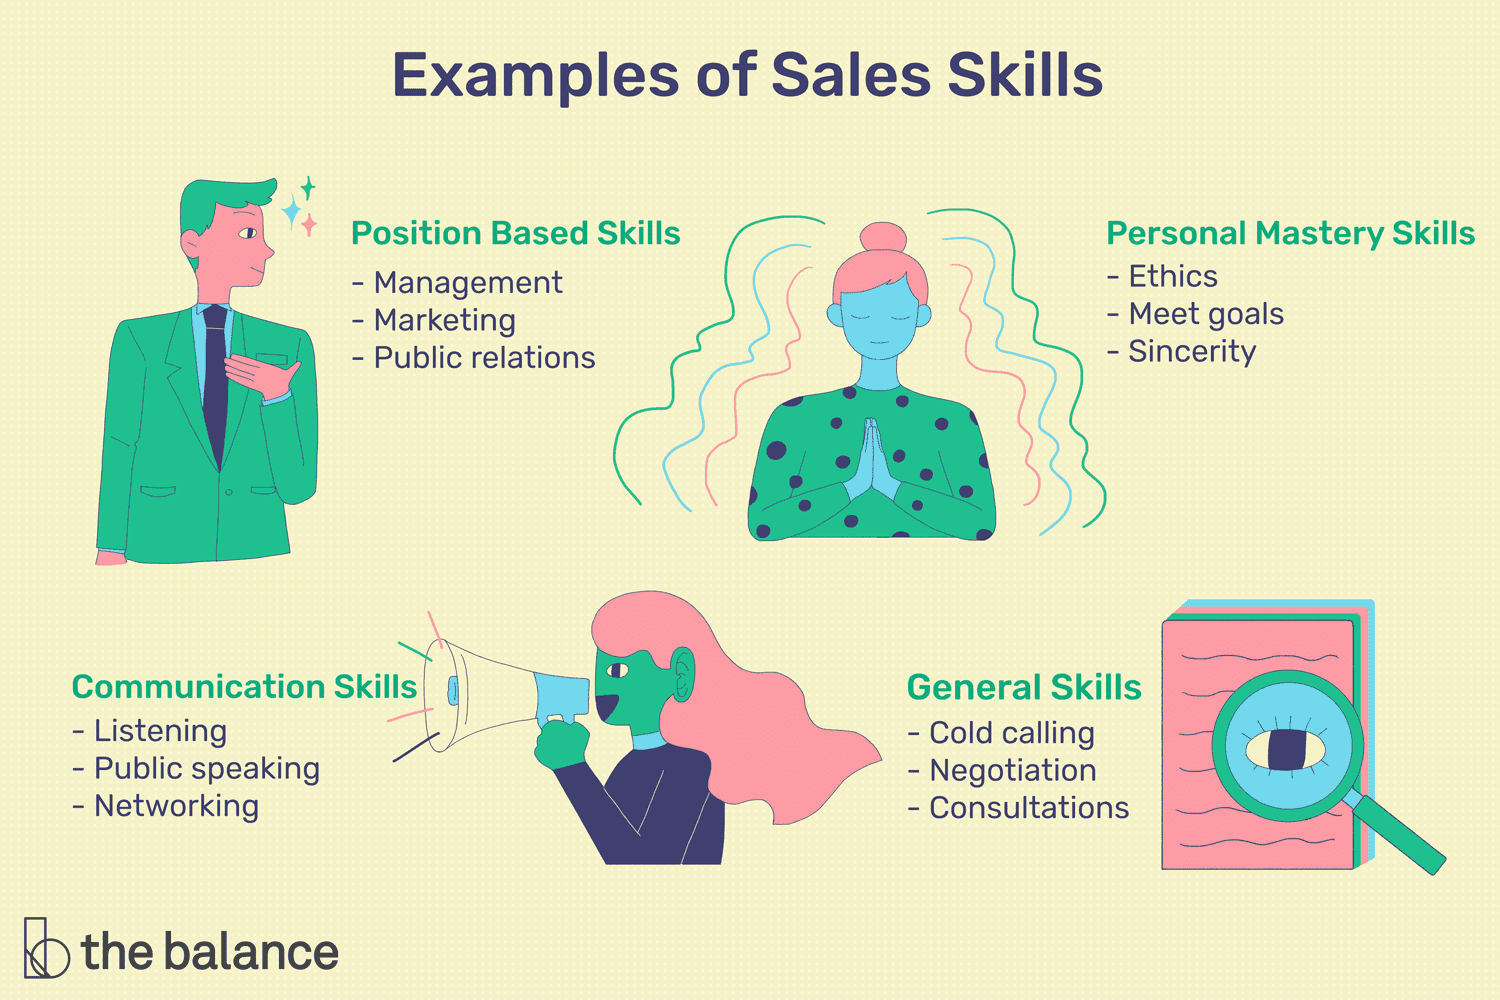 important skills to include in a sales resume